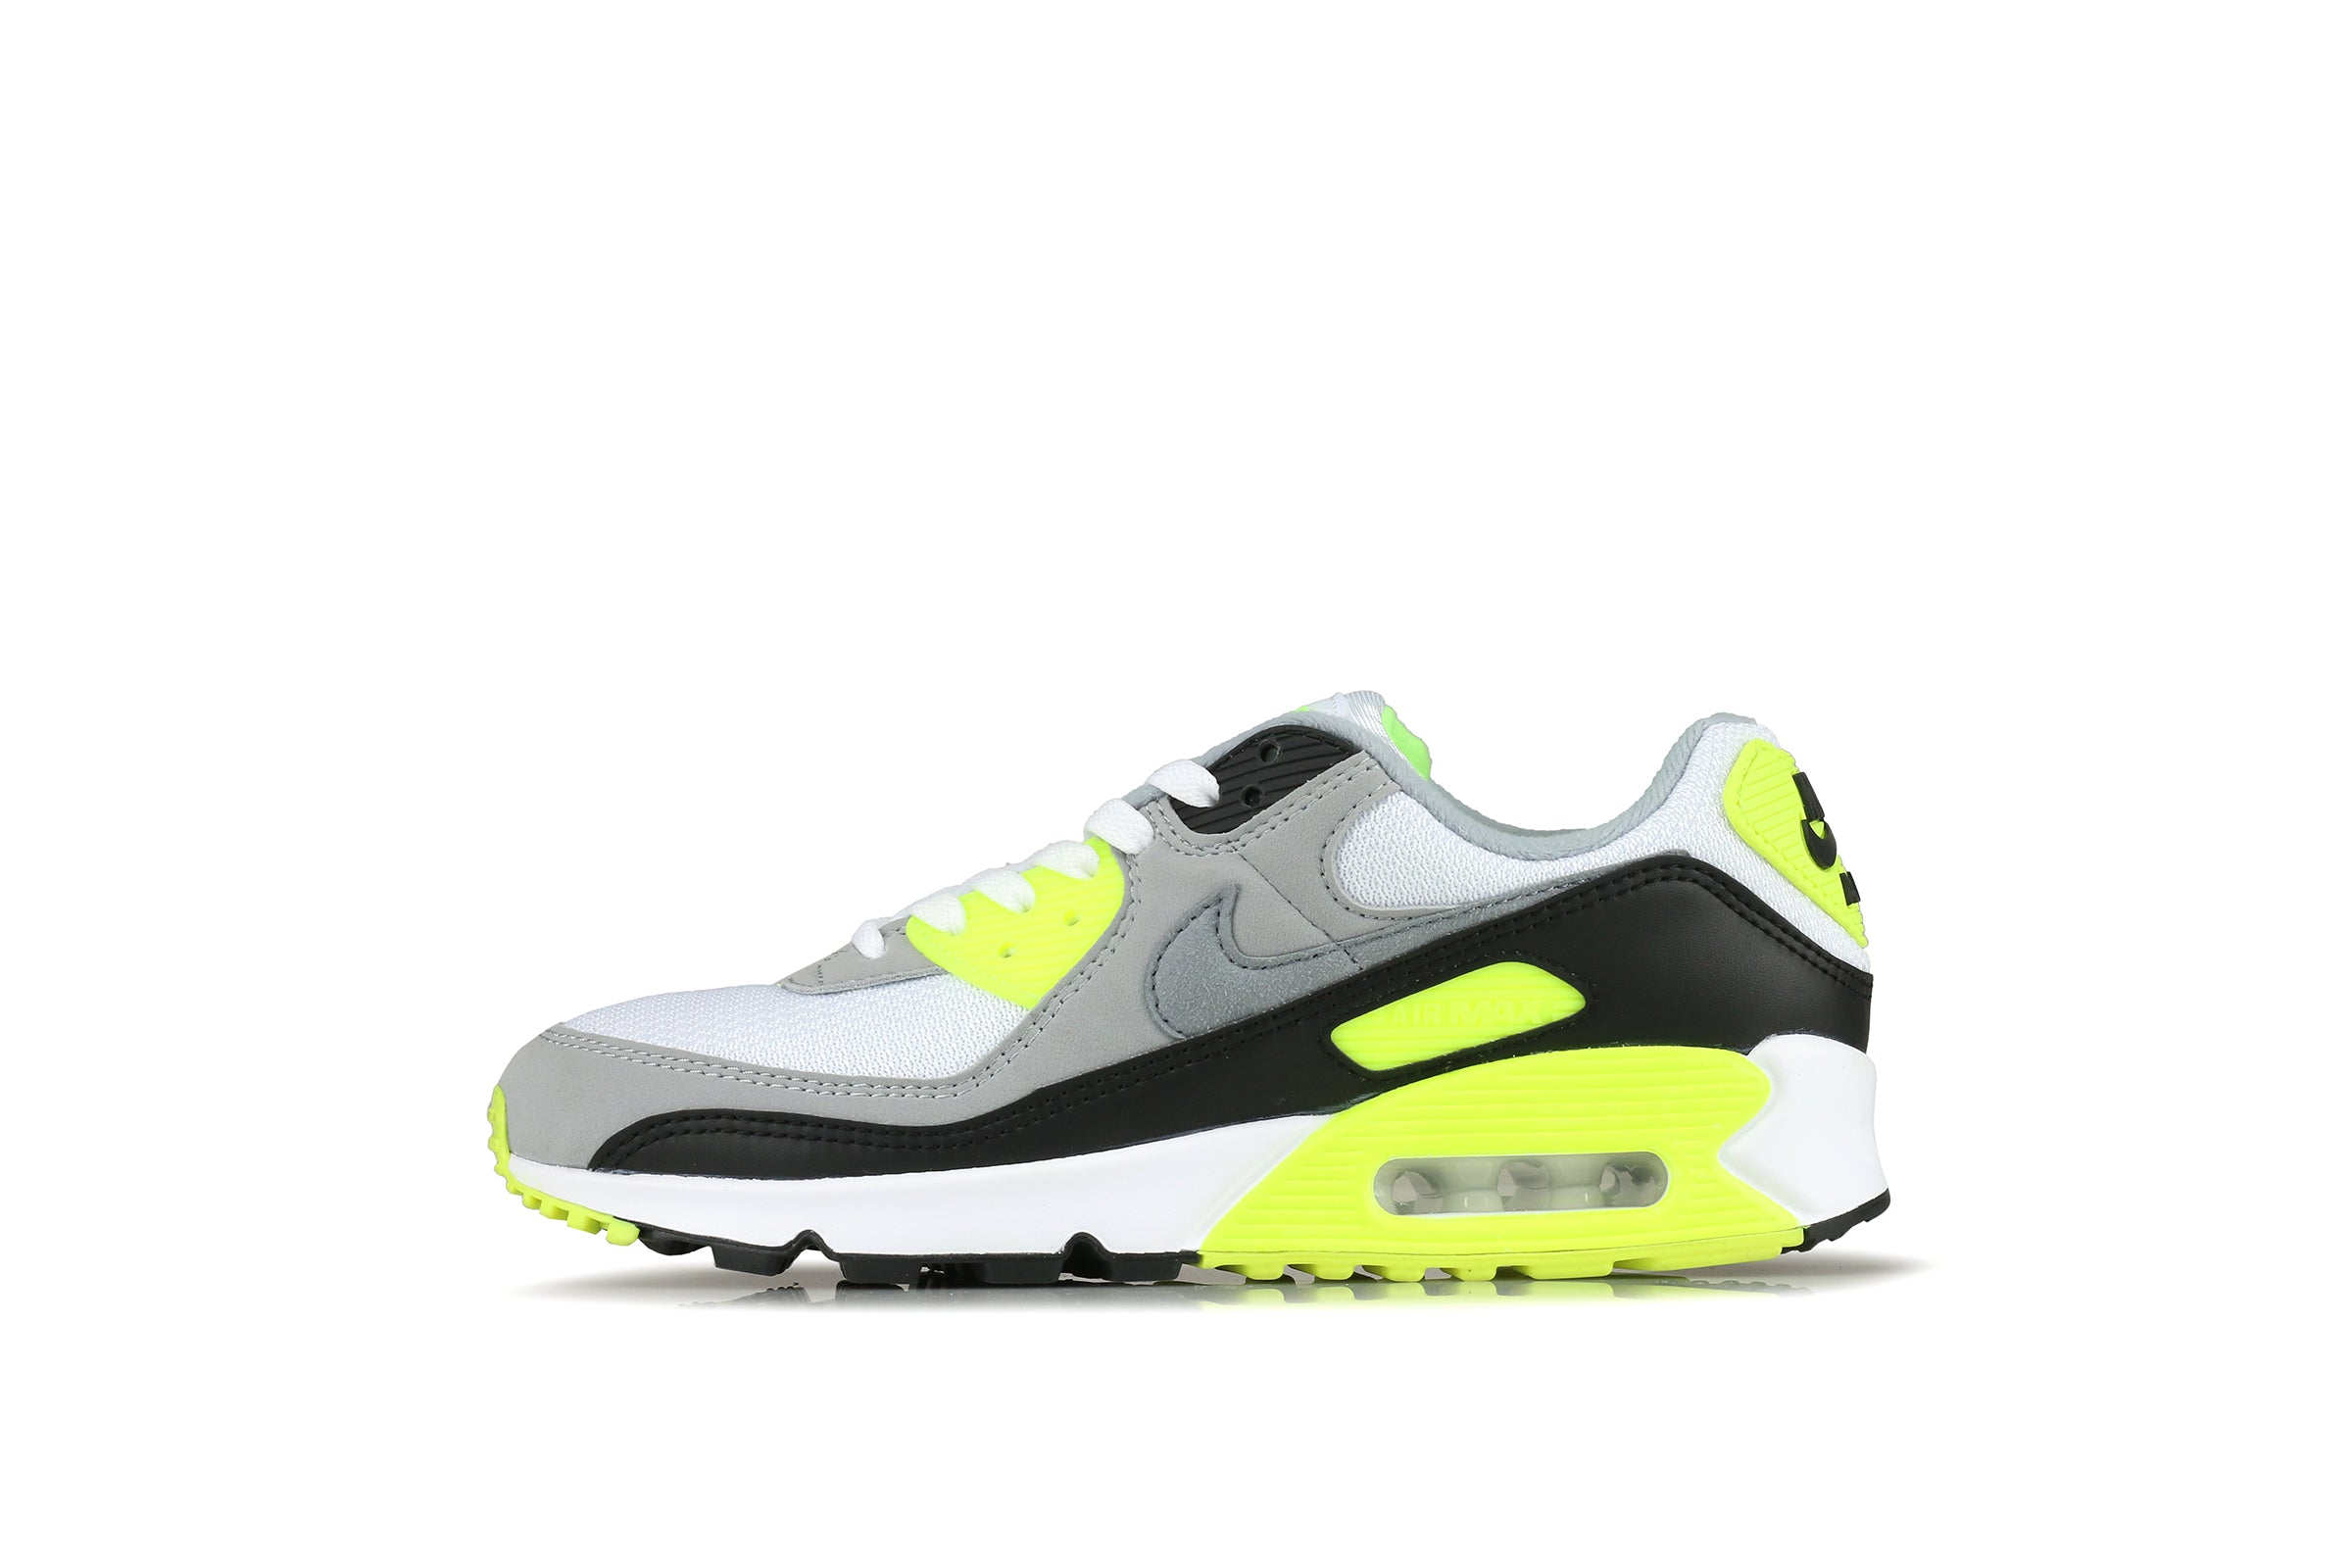 Details about Nike Air Max 2016 Grey Trainers UK 6, Rap 90 95 Shoe Gym Fit Coat Top Run Party